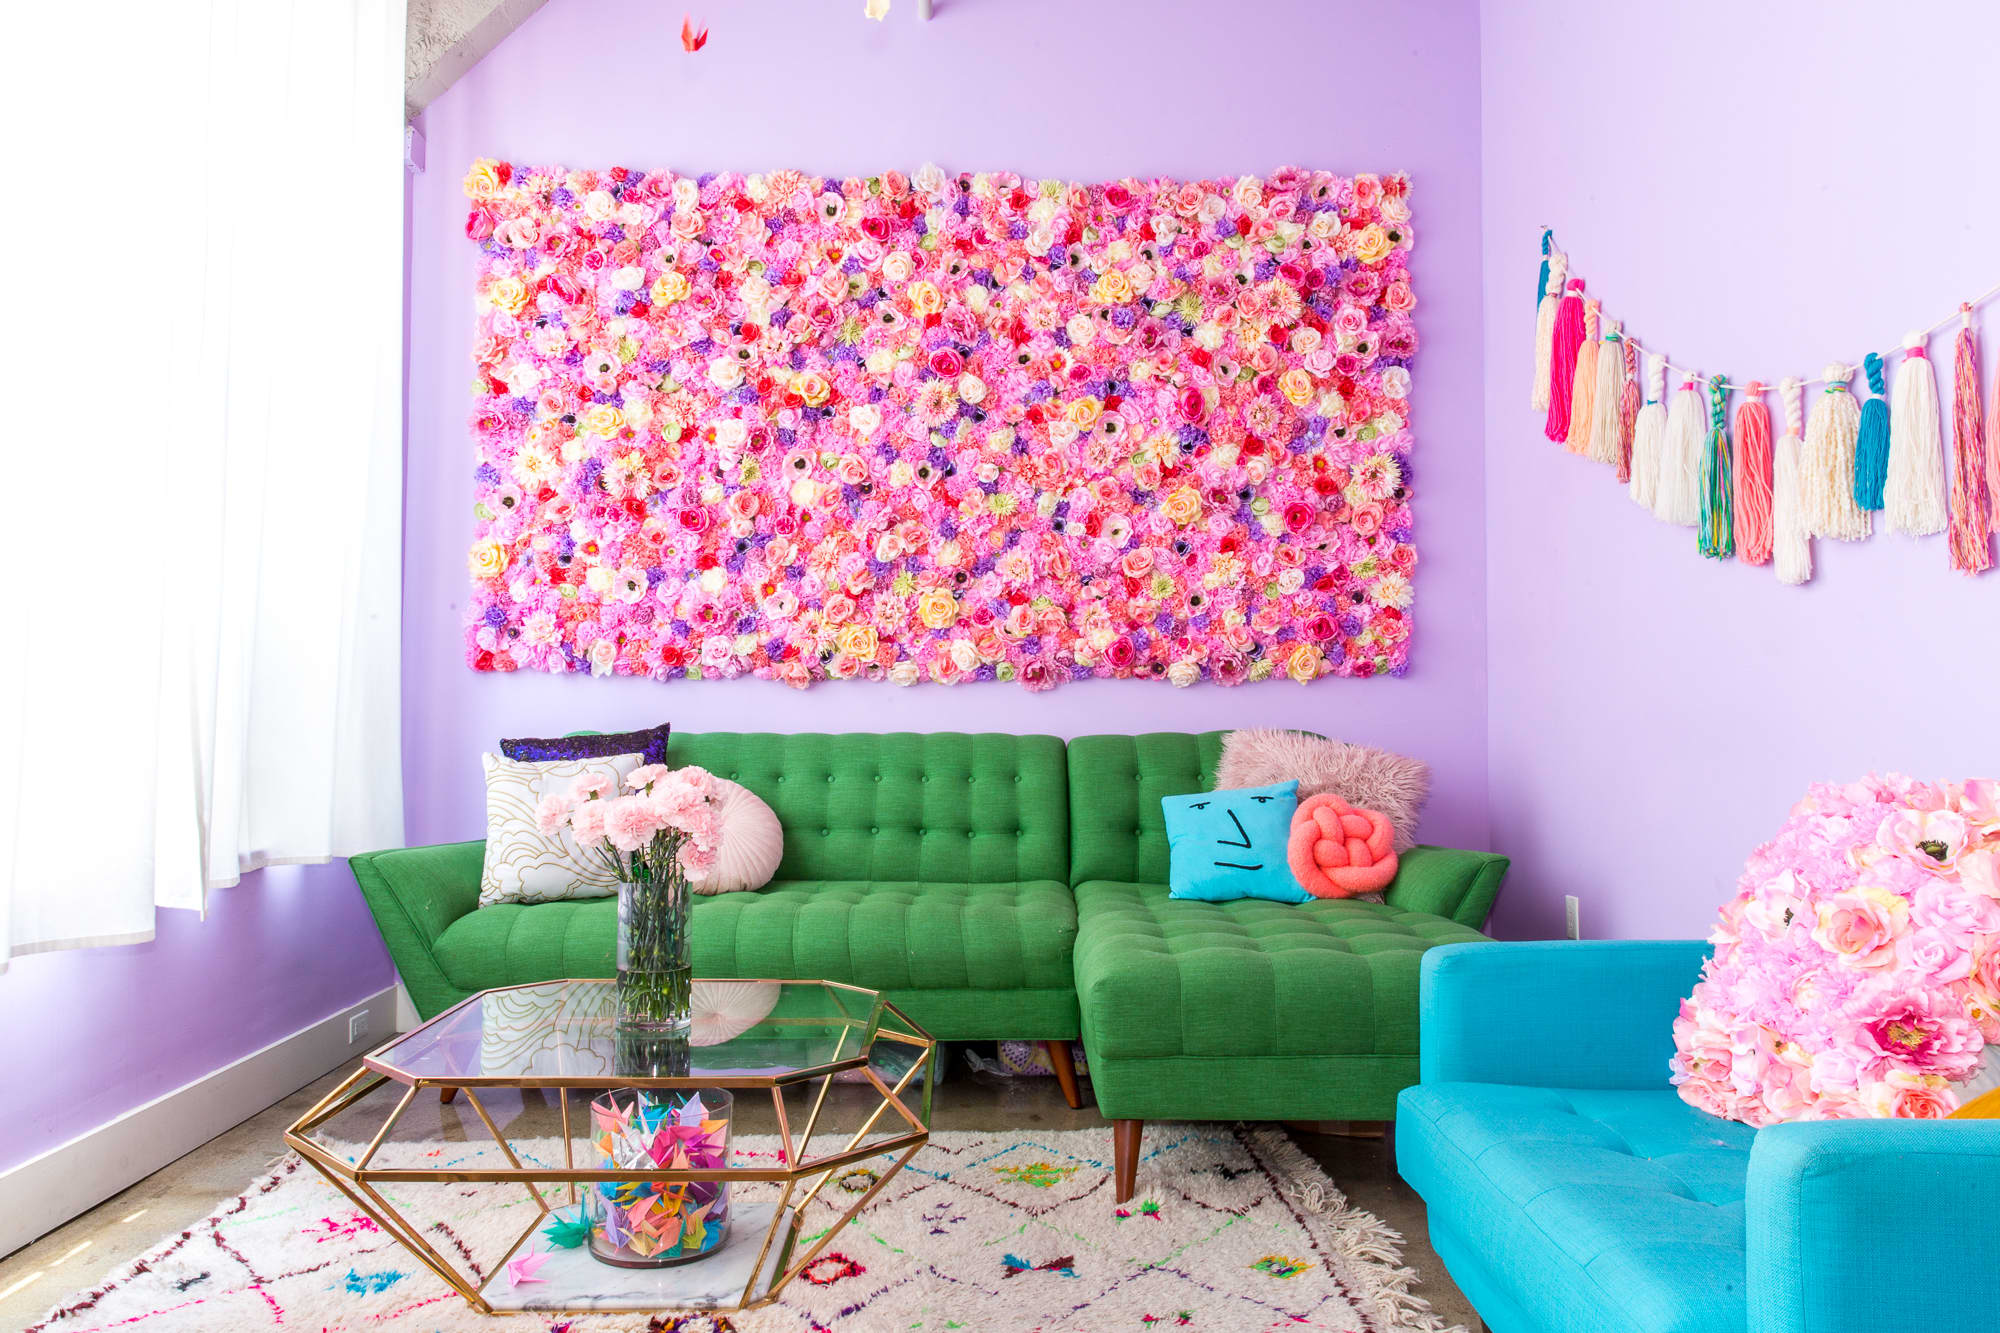 The Most Colorful Apartment In The World